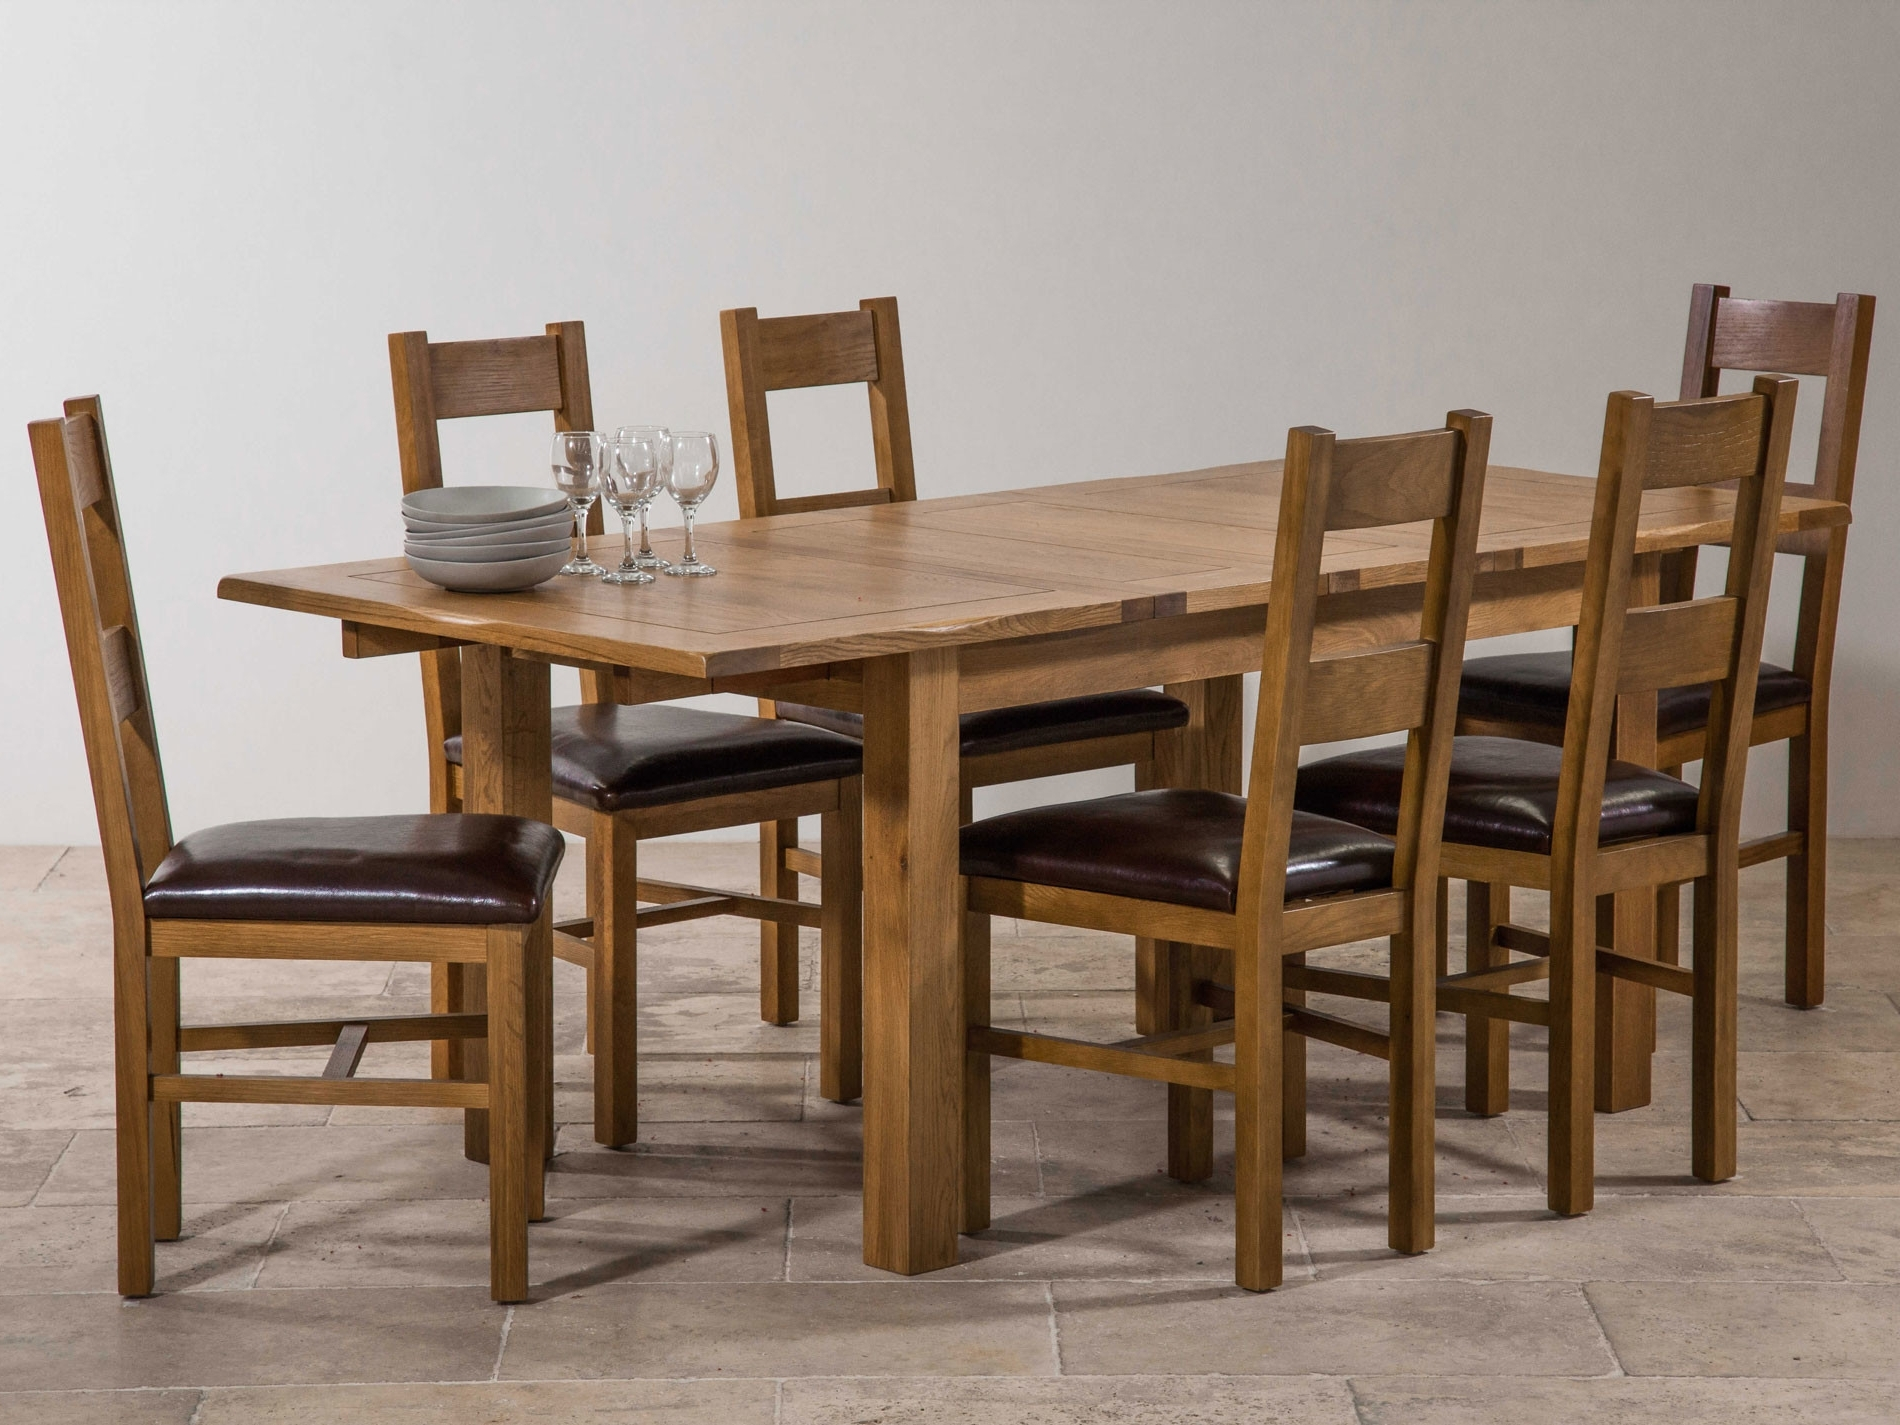 Chunky Solid Oak Dining Tables And 6 Chairs With Well Known Enchanting Extendable Dining Table 3Ft Dining Table Sets On White (View 20 of 25)